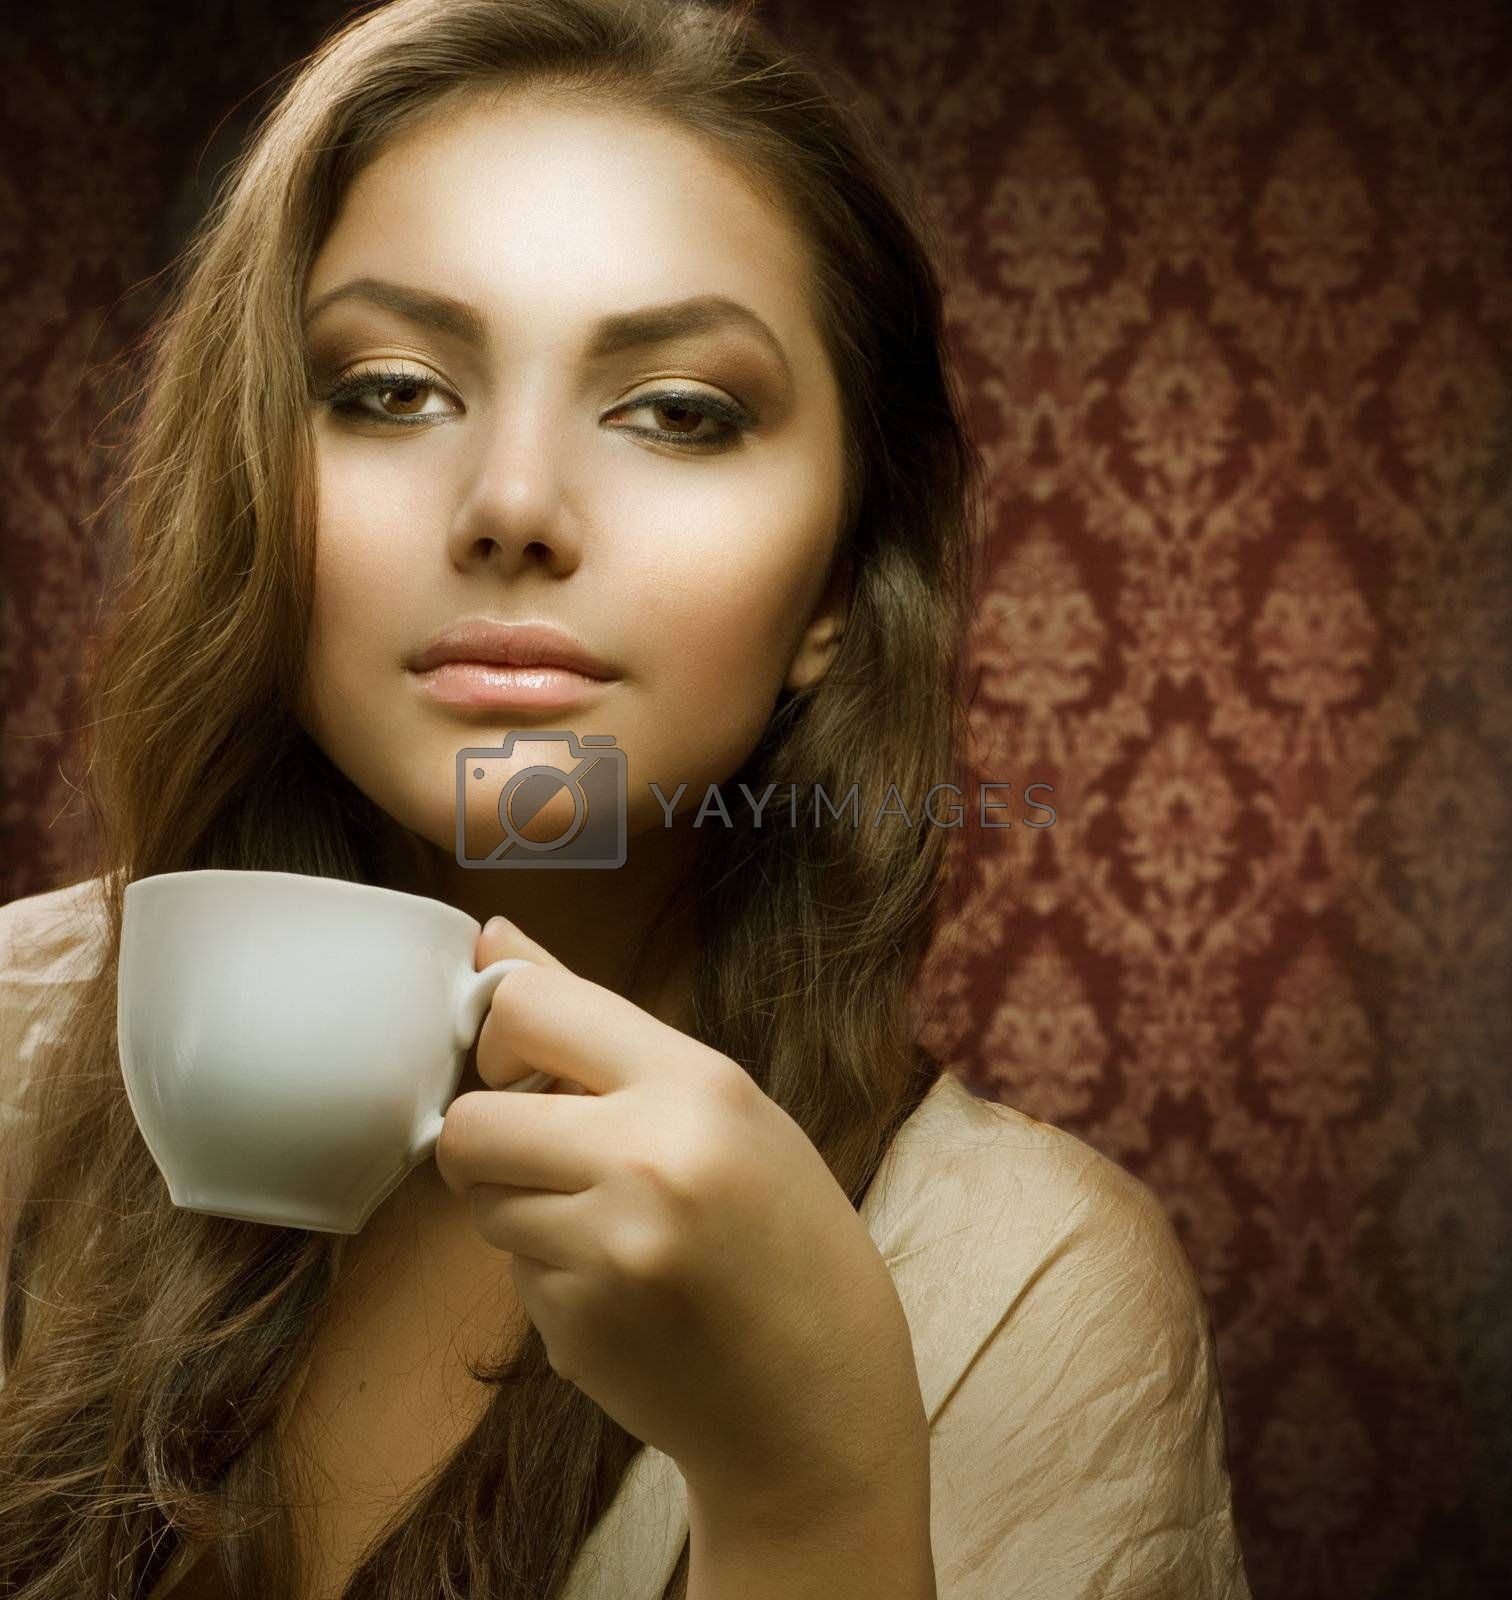 Royalty free image of Beautiful Woman with cup of coffee by SubbotinaA